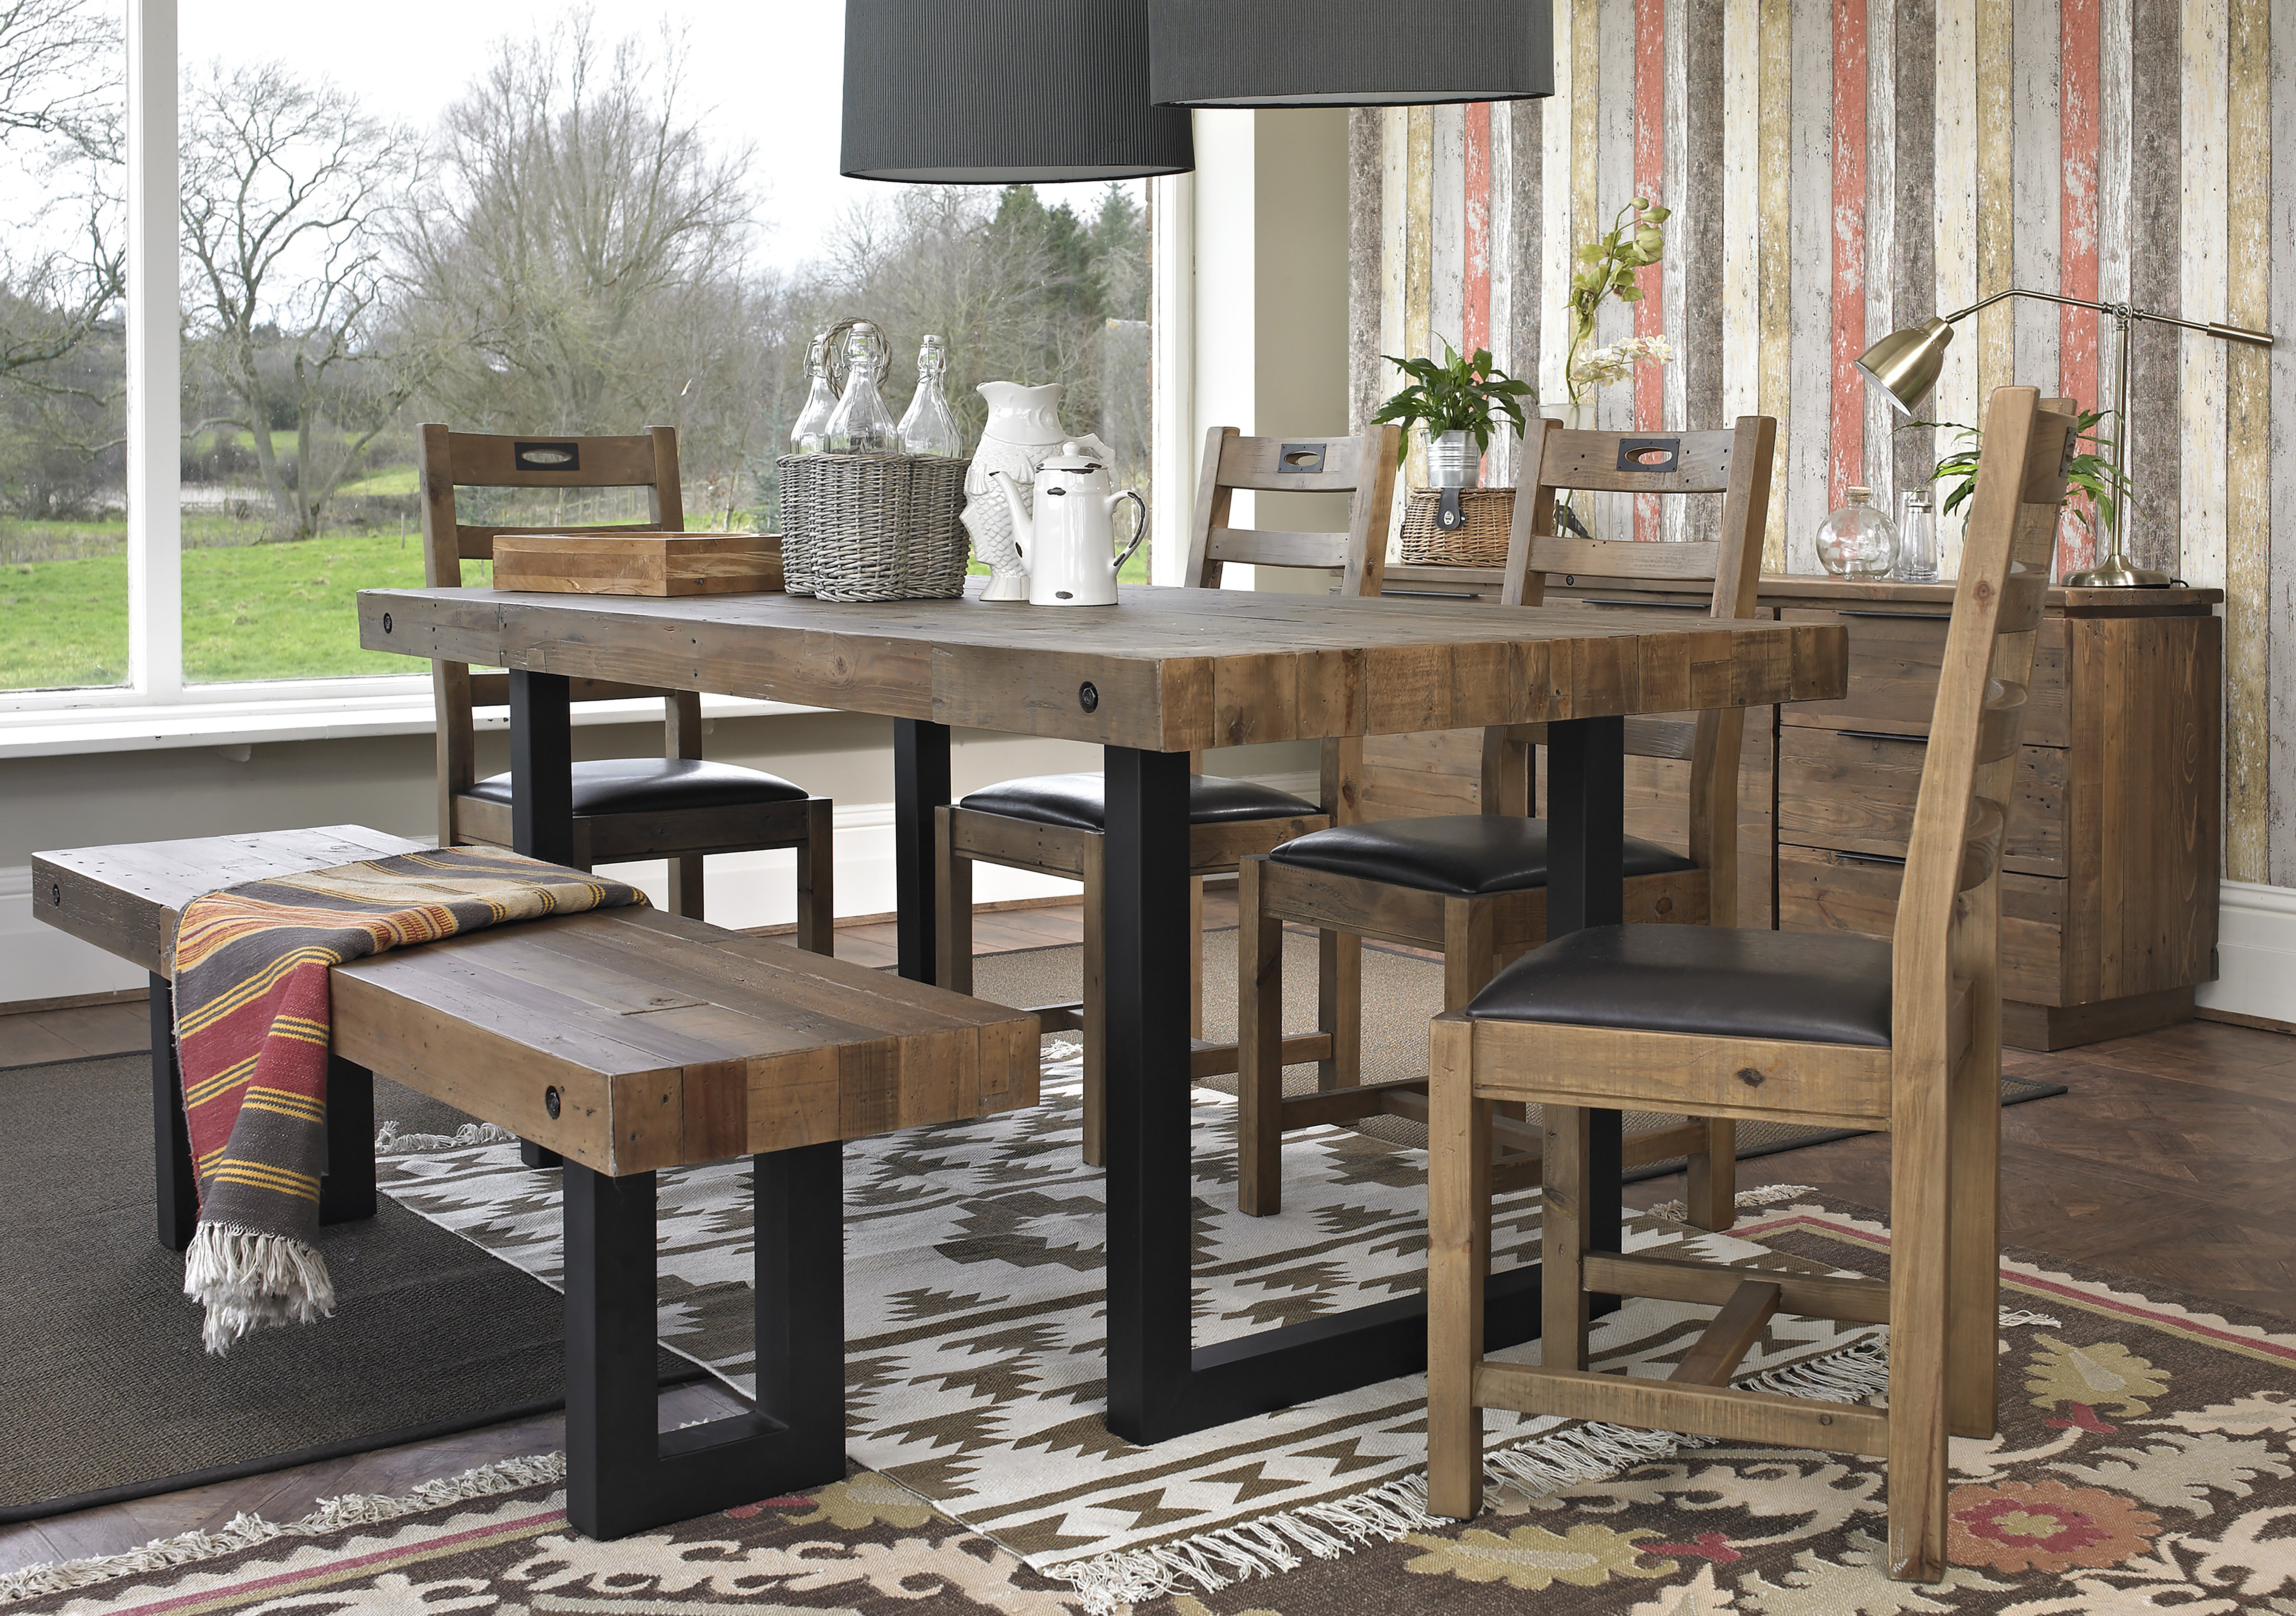 Furniture Village Dining Tables hoxton dining table with 4 chairs - furniture village